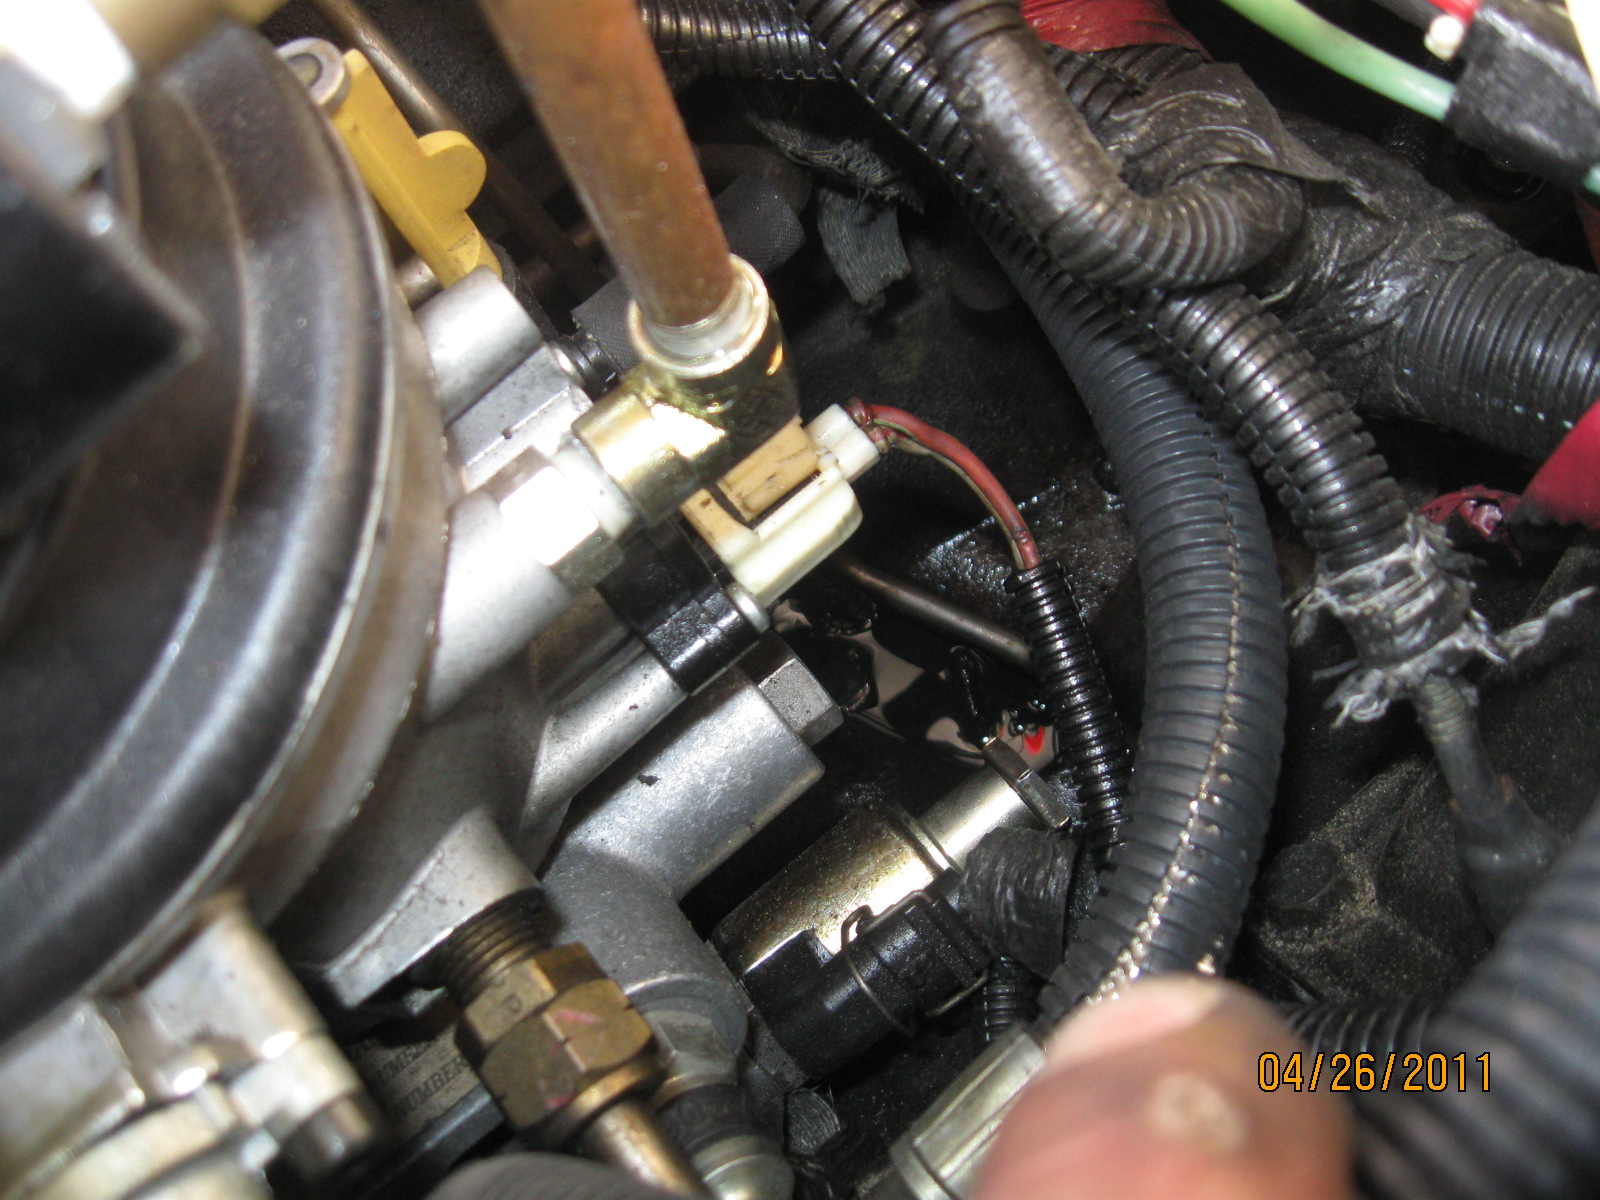 10892d1303873275 fuel bowl leak elec connector fuel bowl 027 fuel bowl leak at a elec connector? diesel forum 7.3 powerstroke fuel bowl wiring harness at n-0.co